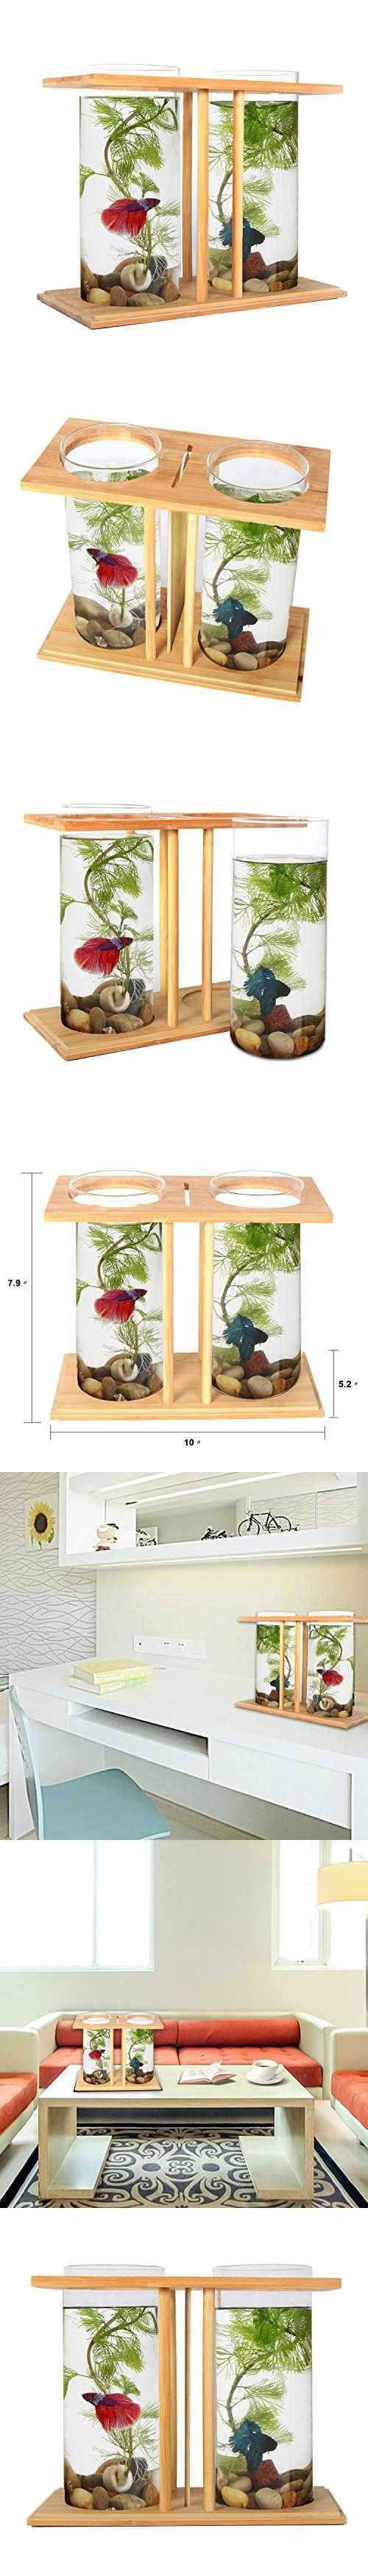 Fish Bowls Bamboo,Segarty Unique Cool Design Small Square Glass Vase  Creative Aquarium Kit With